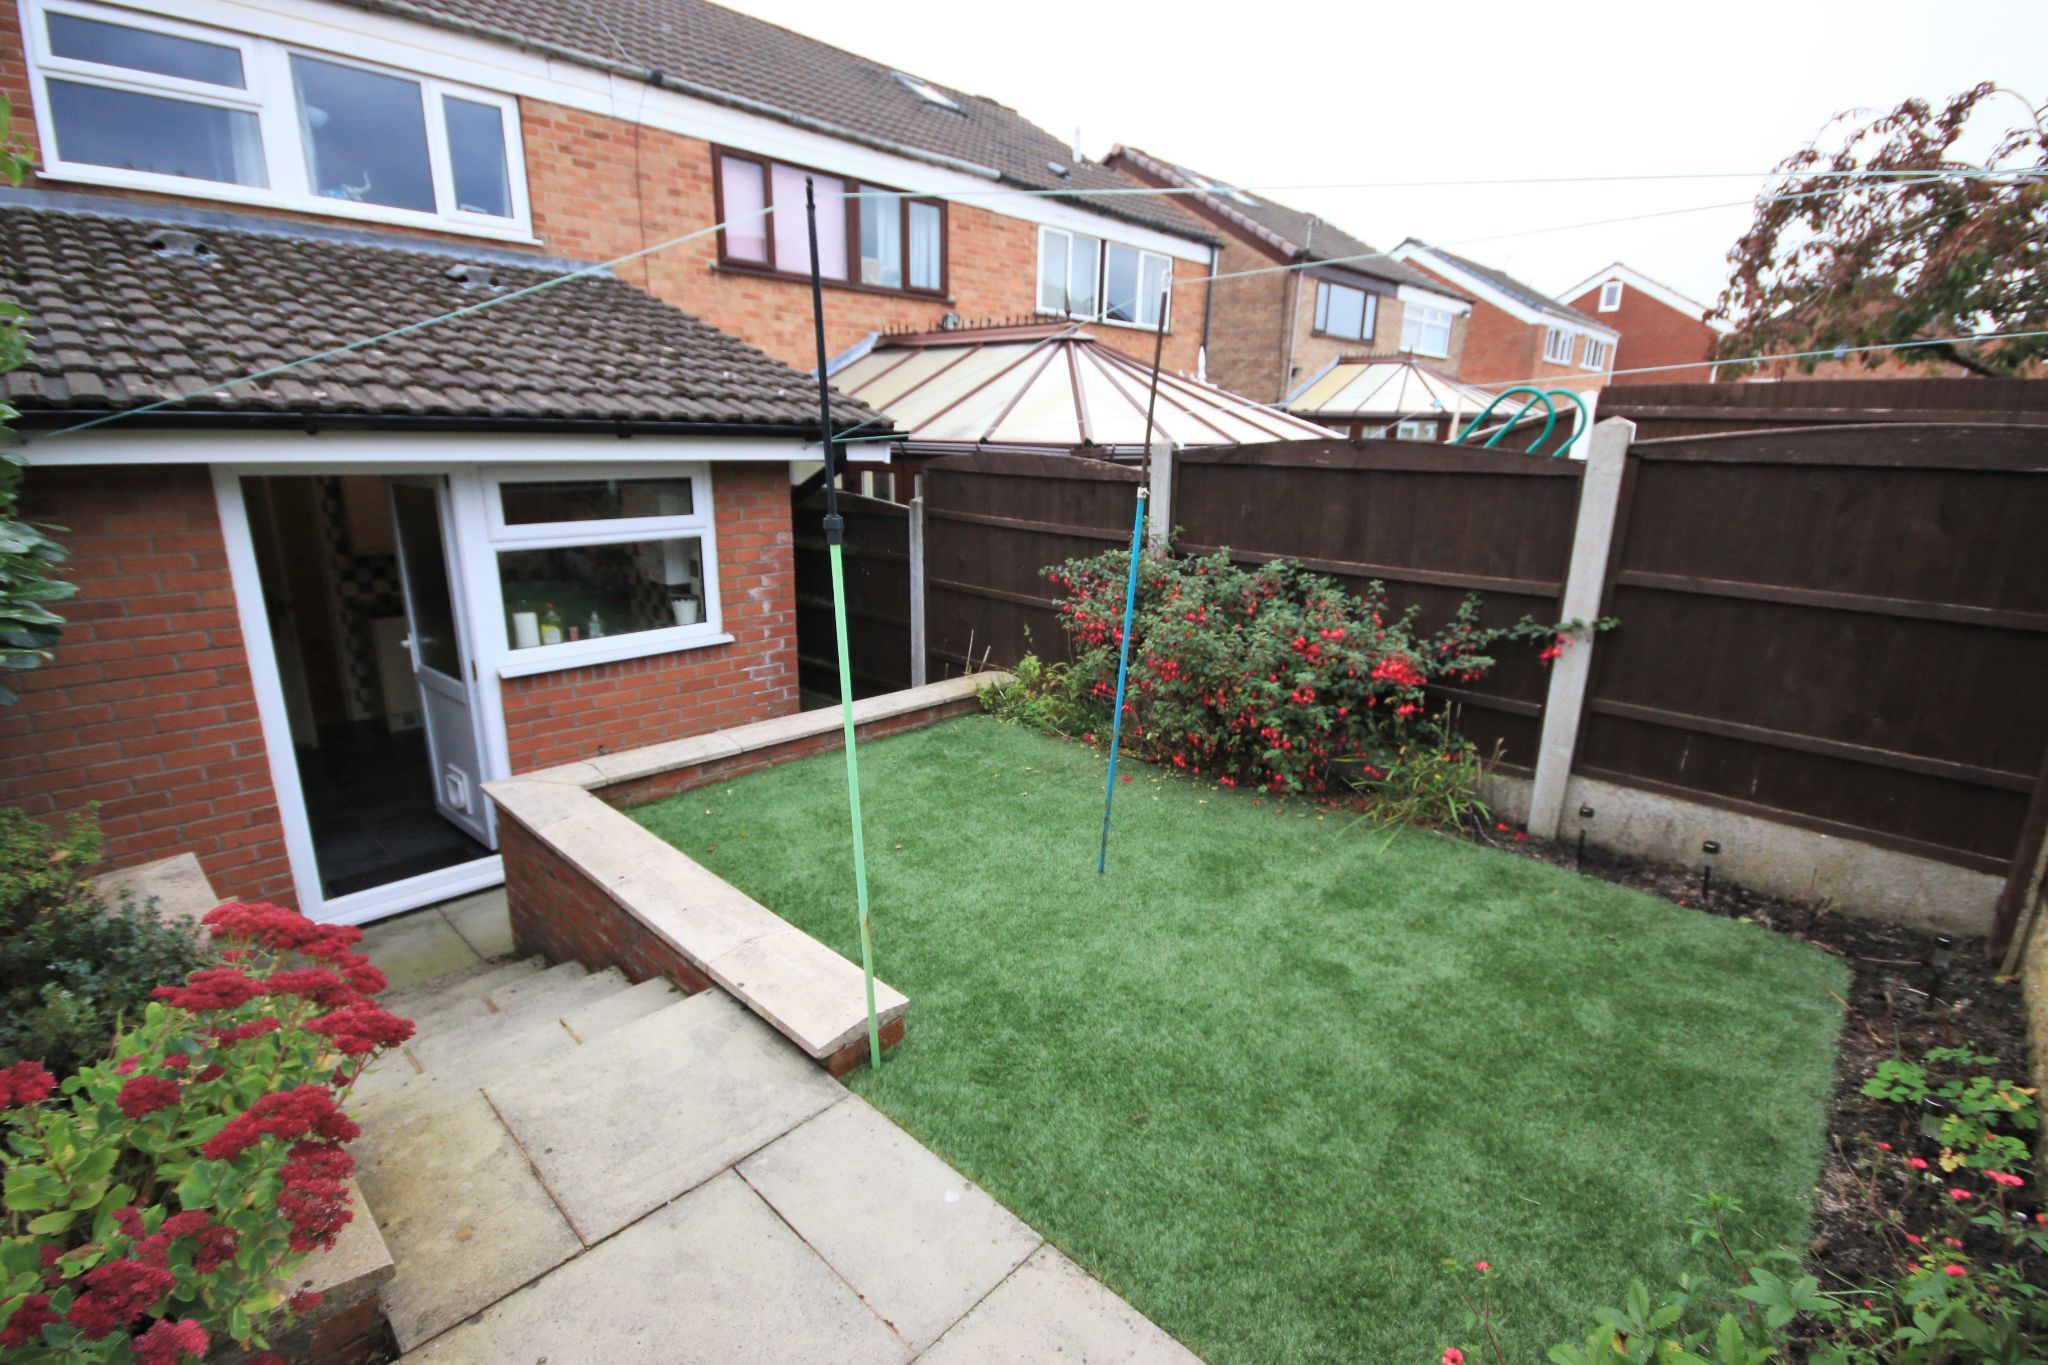 4 Bedroom Mid Terraced House For Sale - Photograph 17